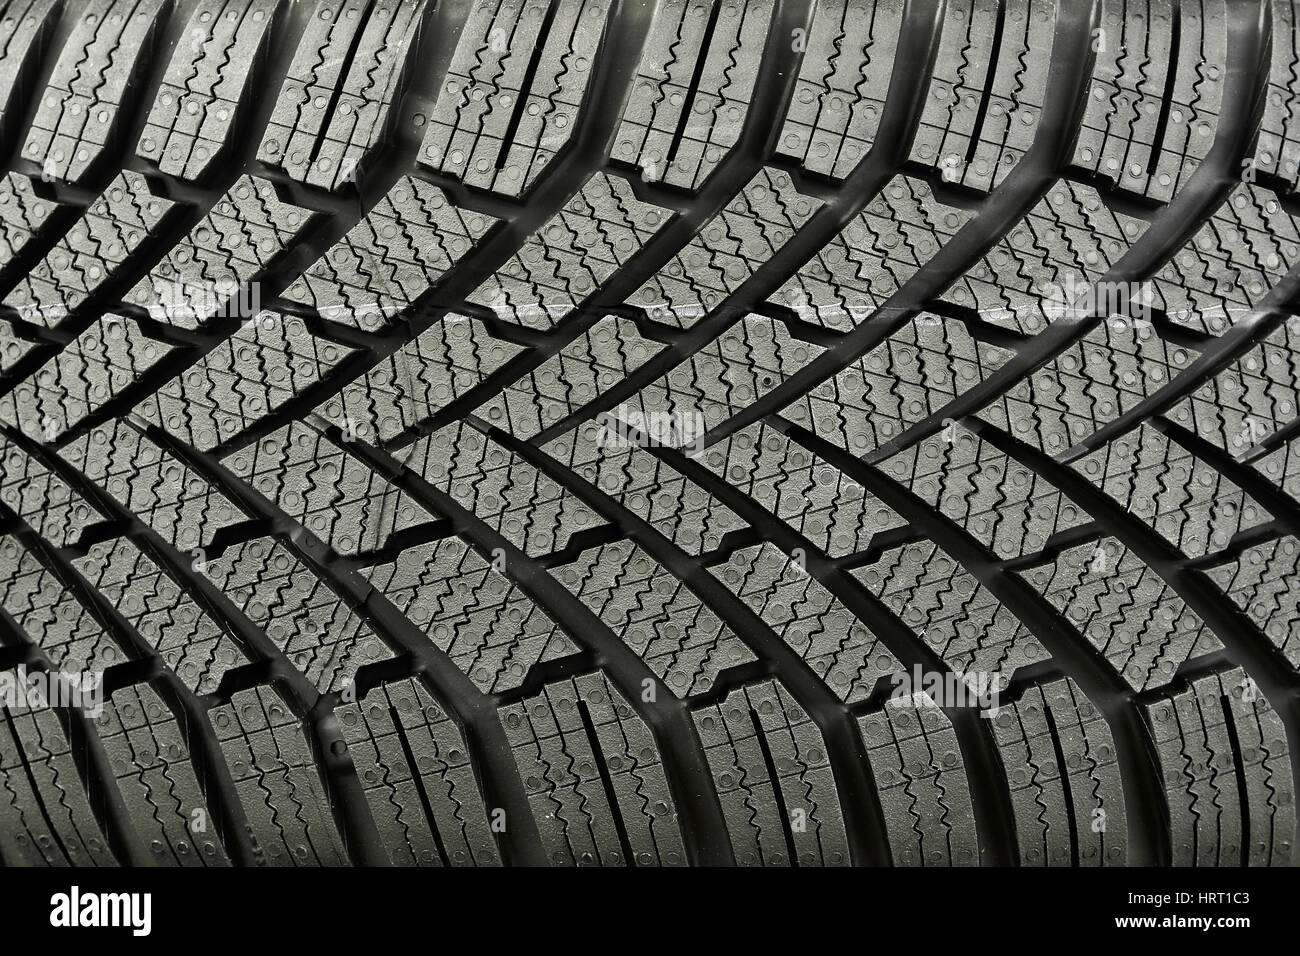 New Tire Tread Depth >> Car tire texture Stock Photo, Royalty Free Image: 135137635 - Alamy